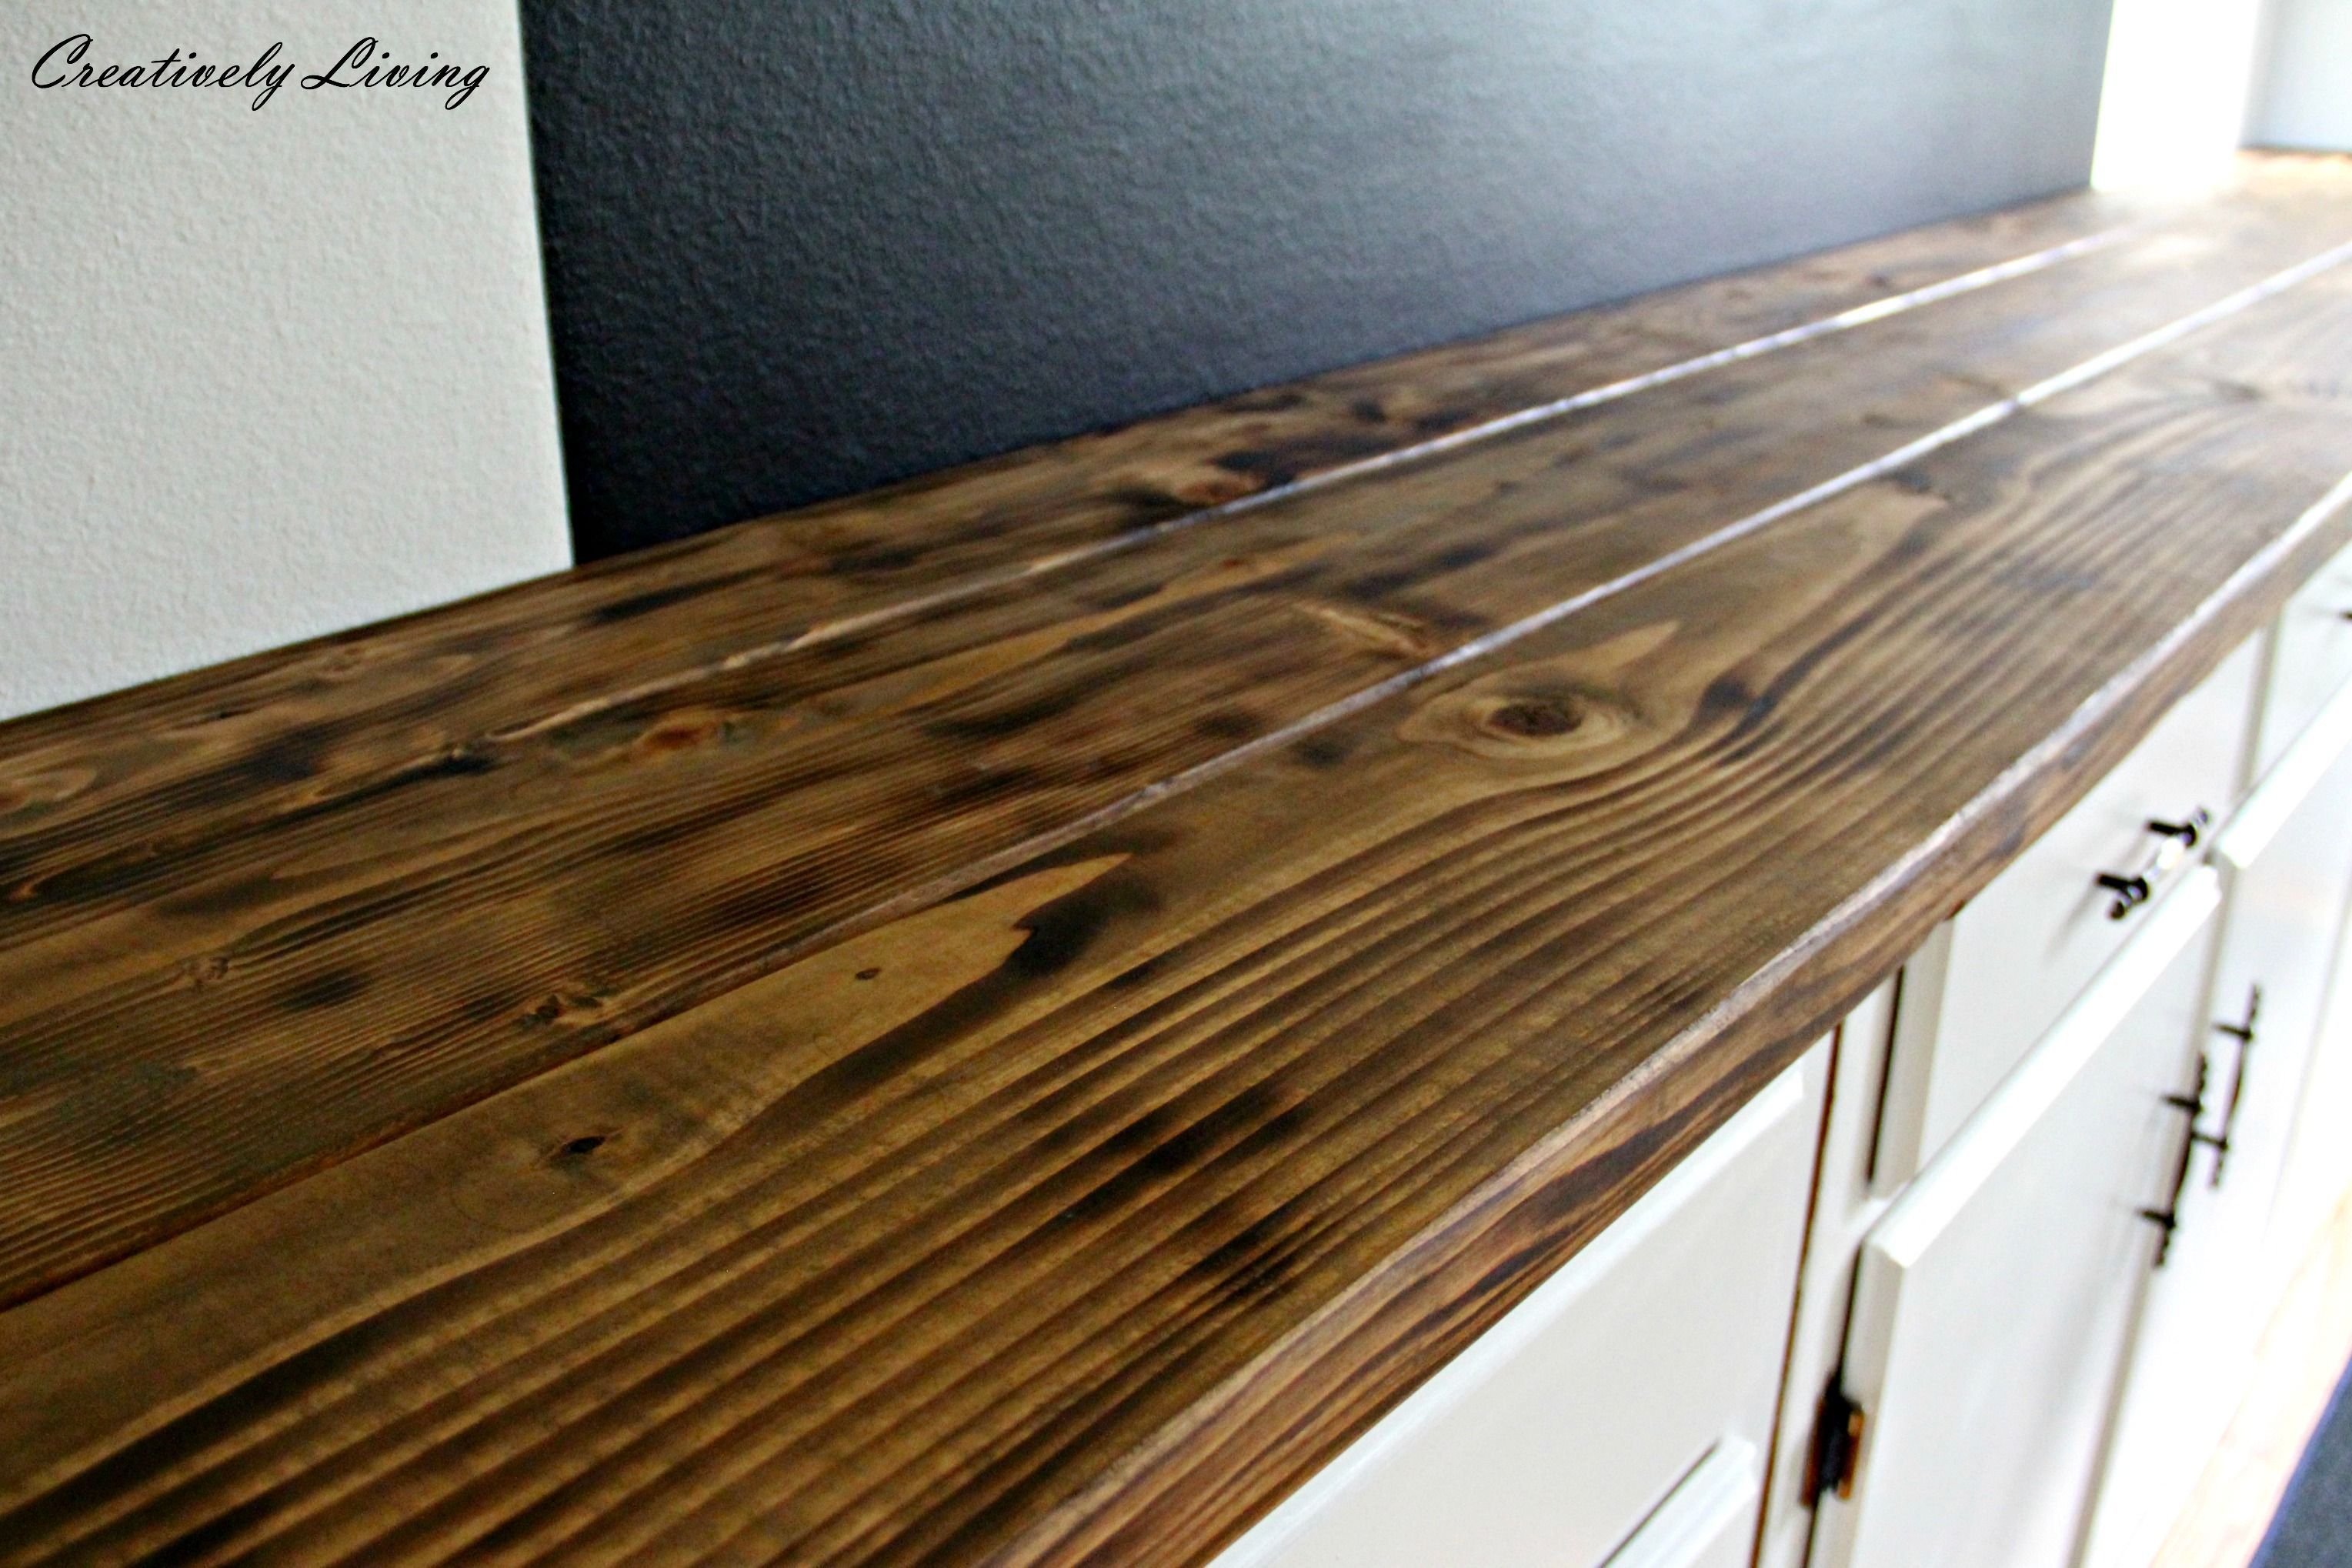 Torched diy rustic wood counter top for under 50 by for What to use for a bar top